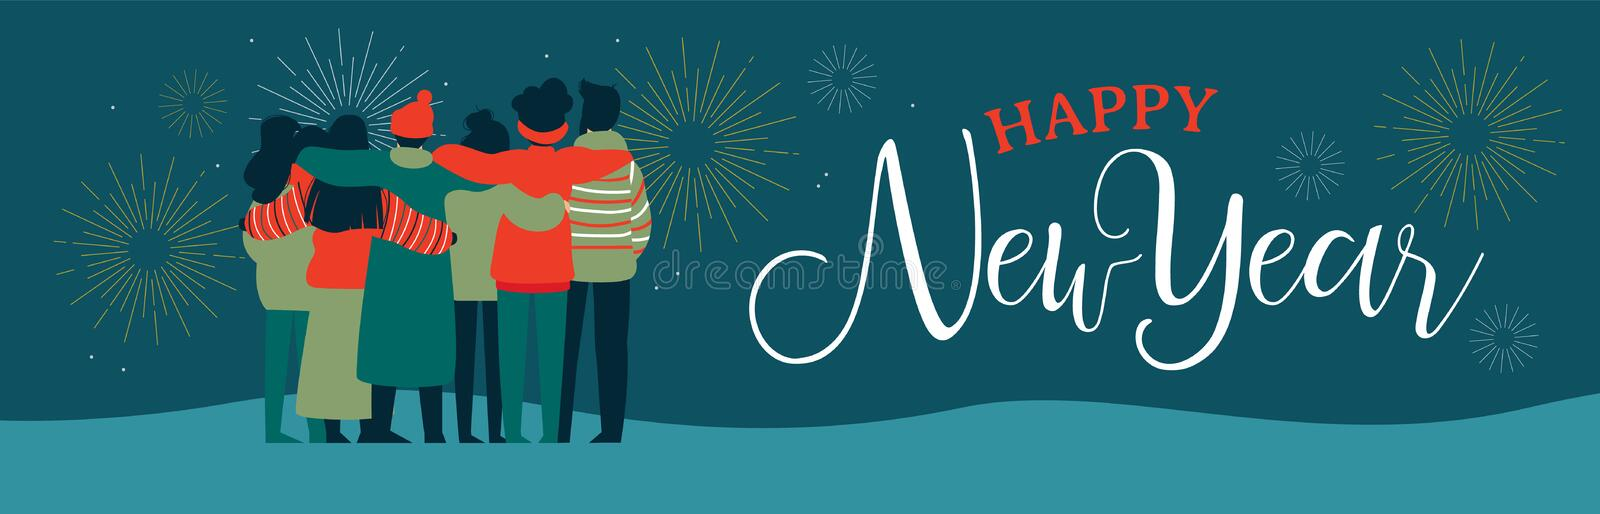 Happy New Year friend people group web banner royalty free illustration